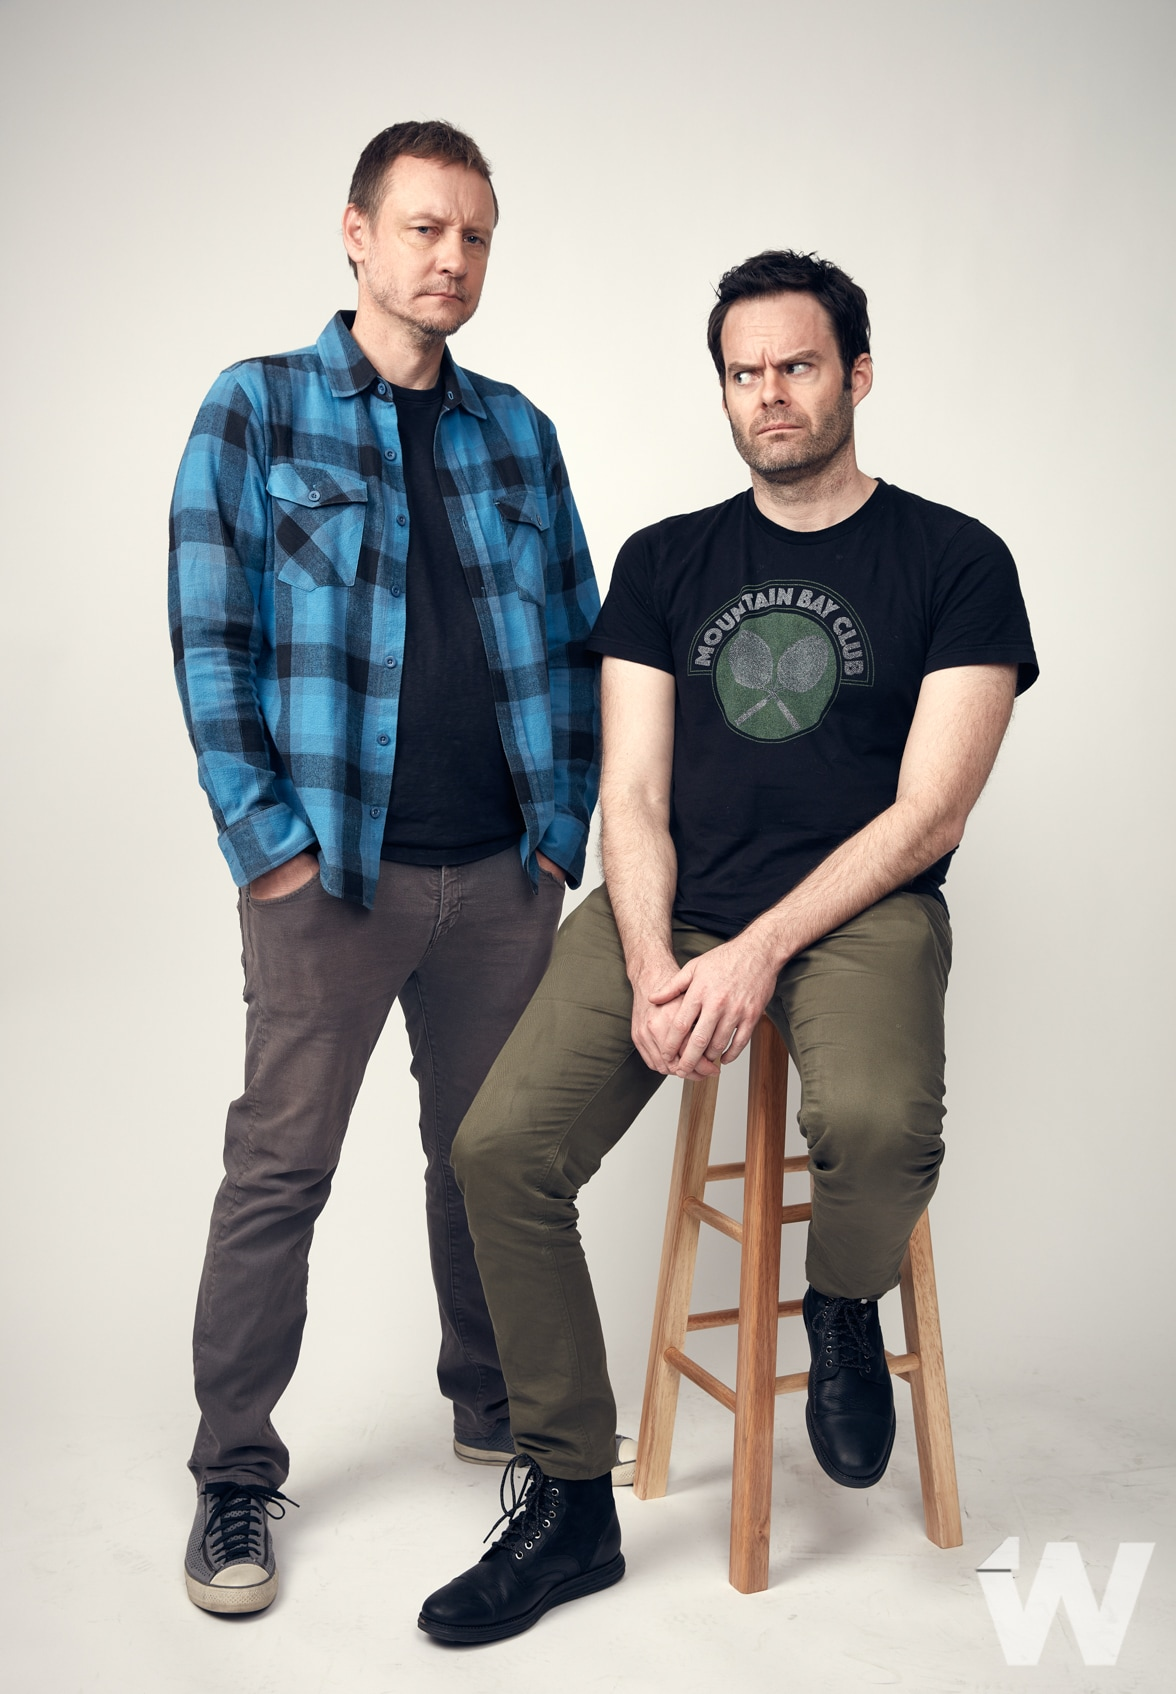 SXSW 2018 Alec berg and Bill Hader Barry